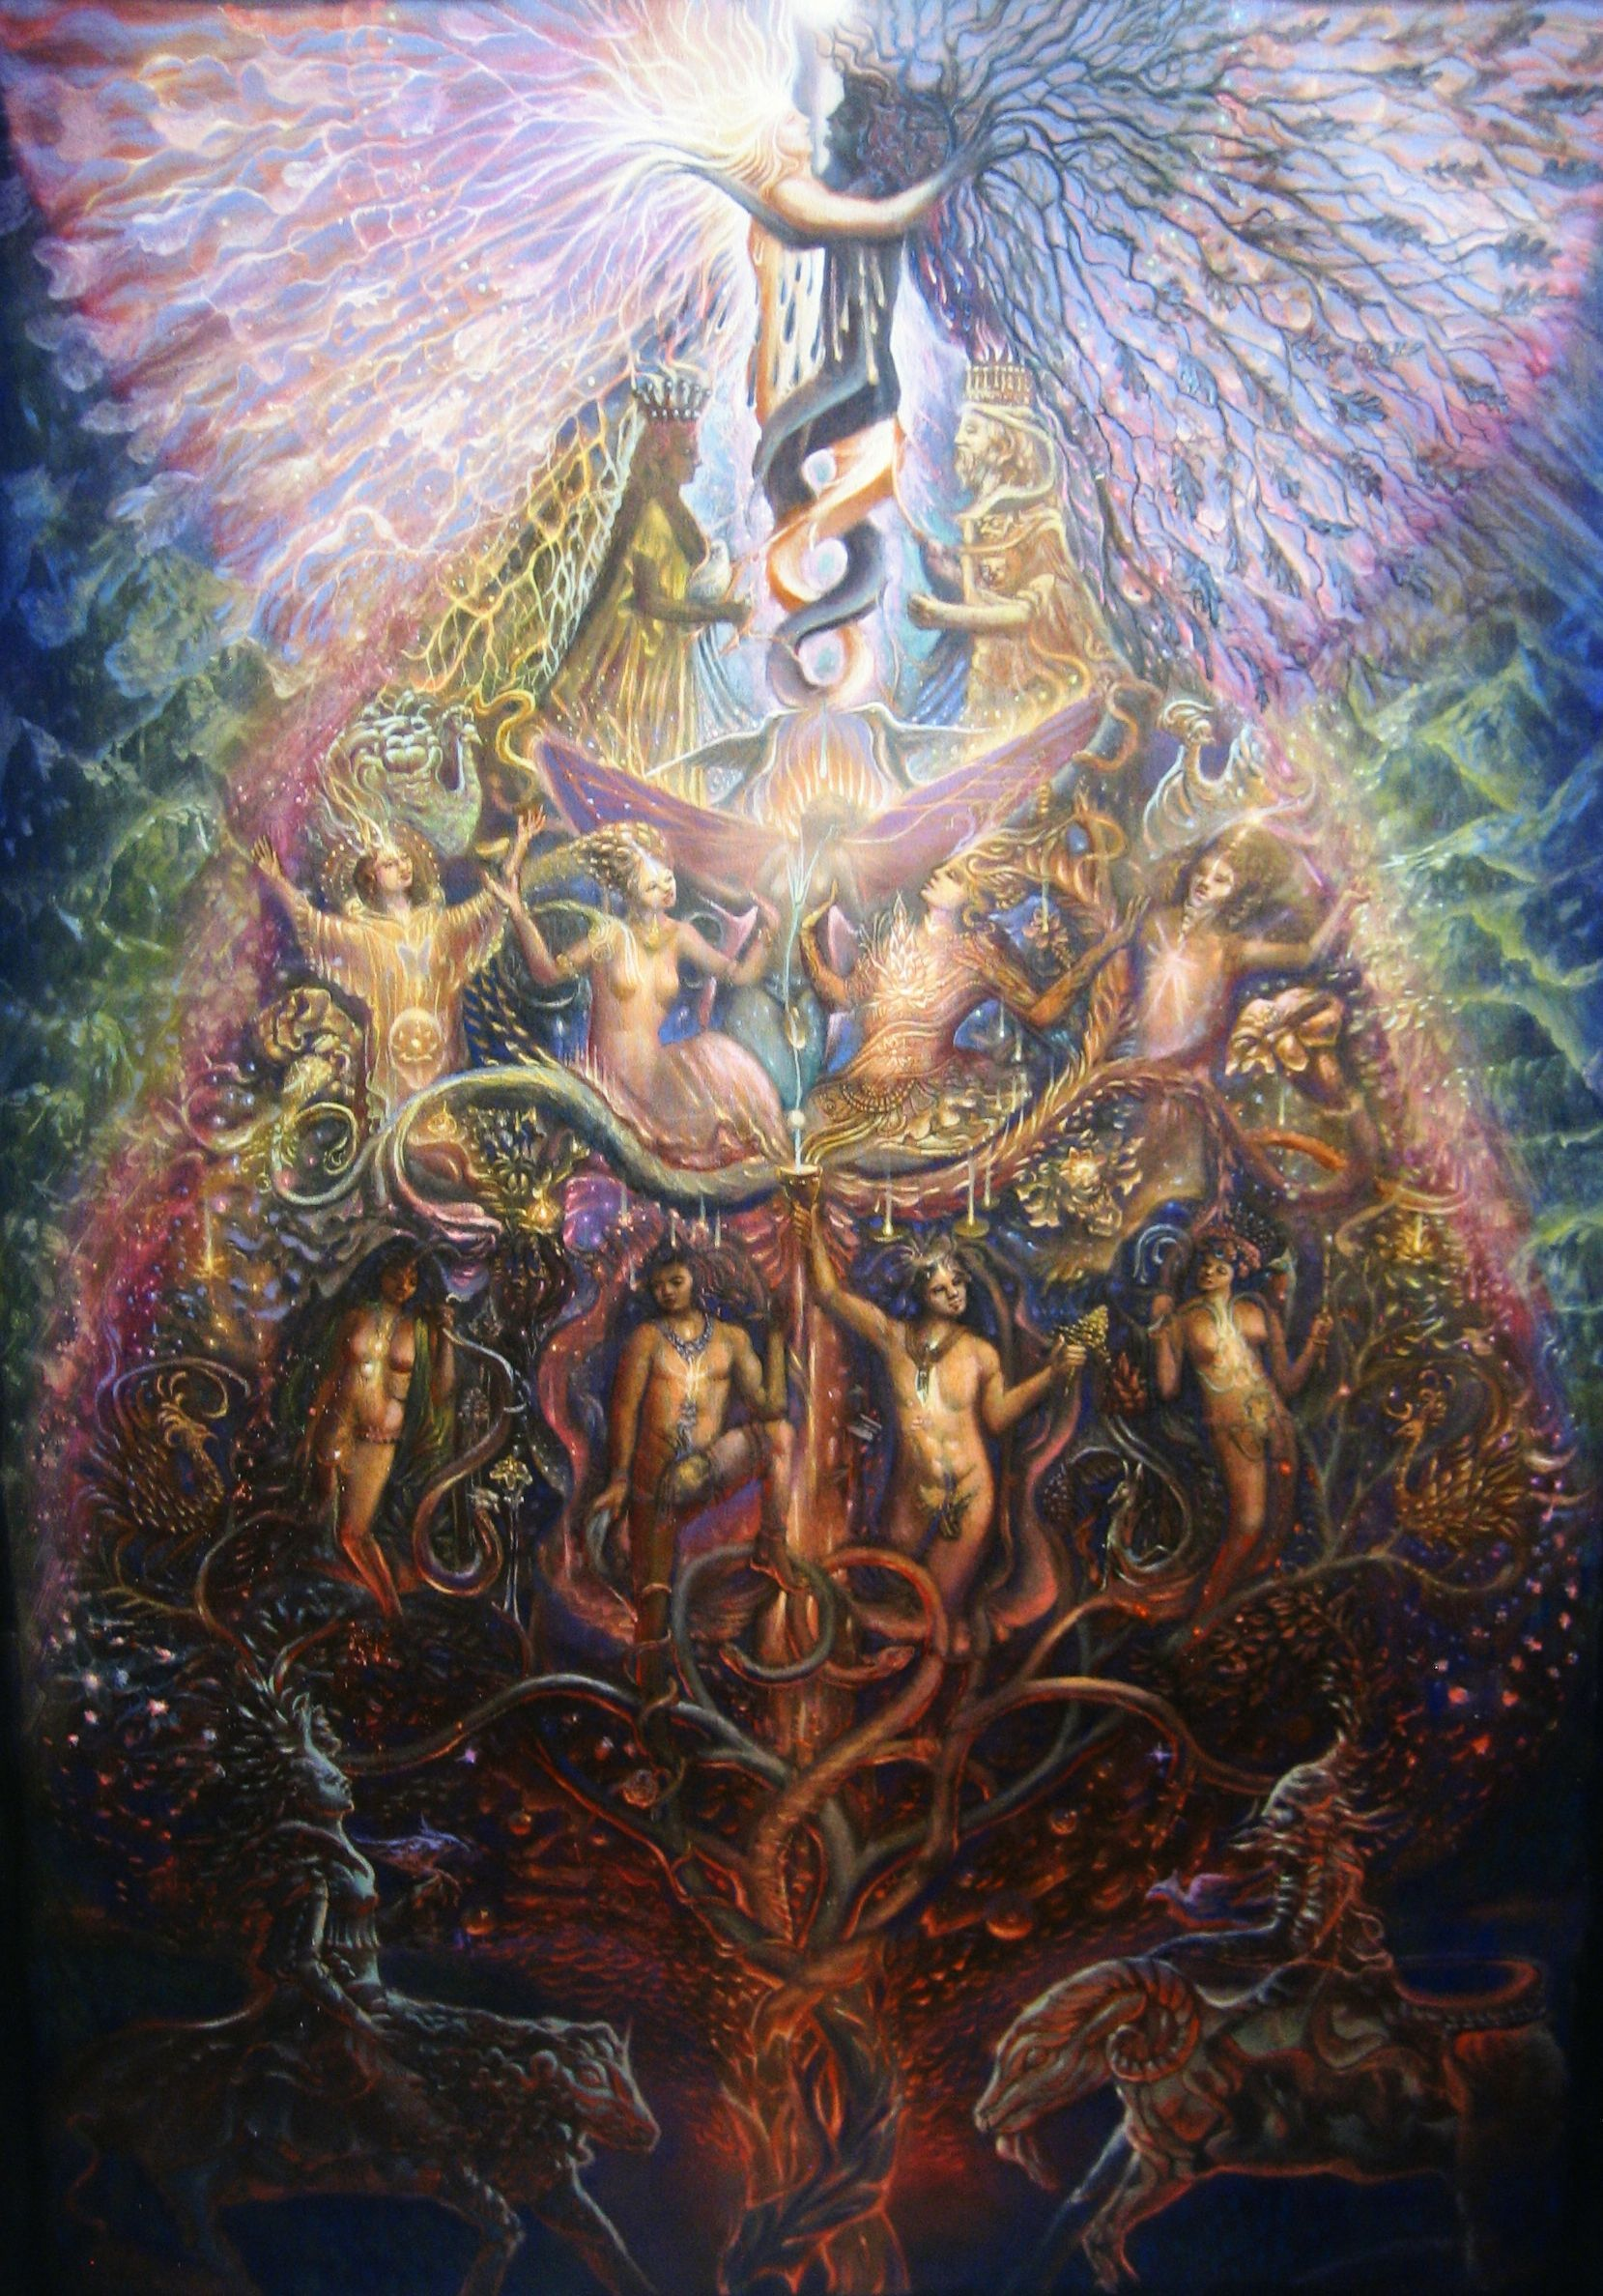 Union of the Opposites' by Kuba Ambrose - oil and egg tempera on ...